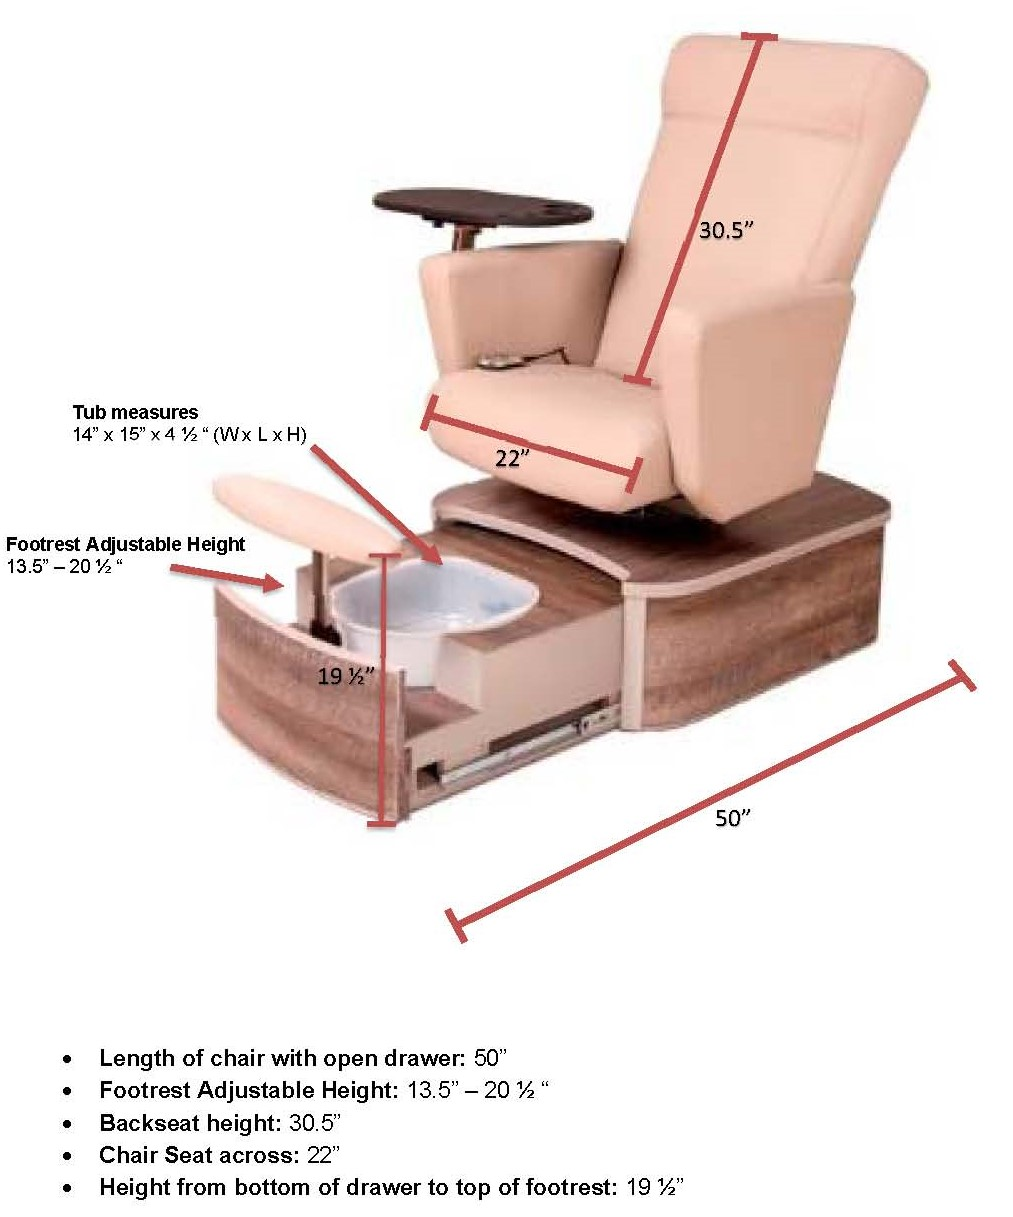 element-no-plumbing-chair-specifications-by-belava.jpg